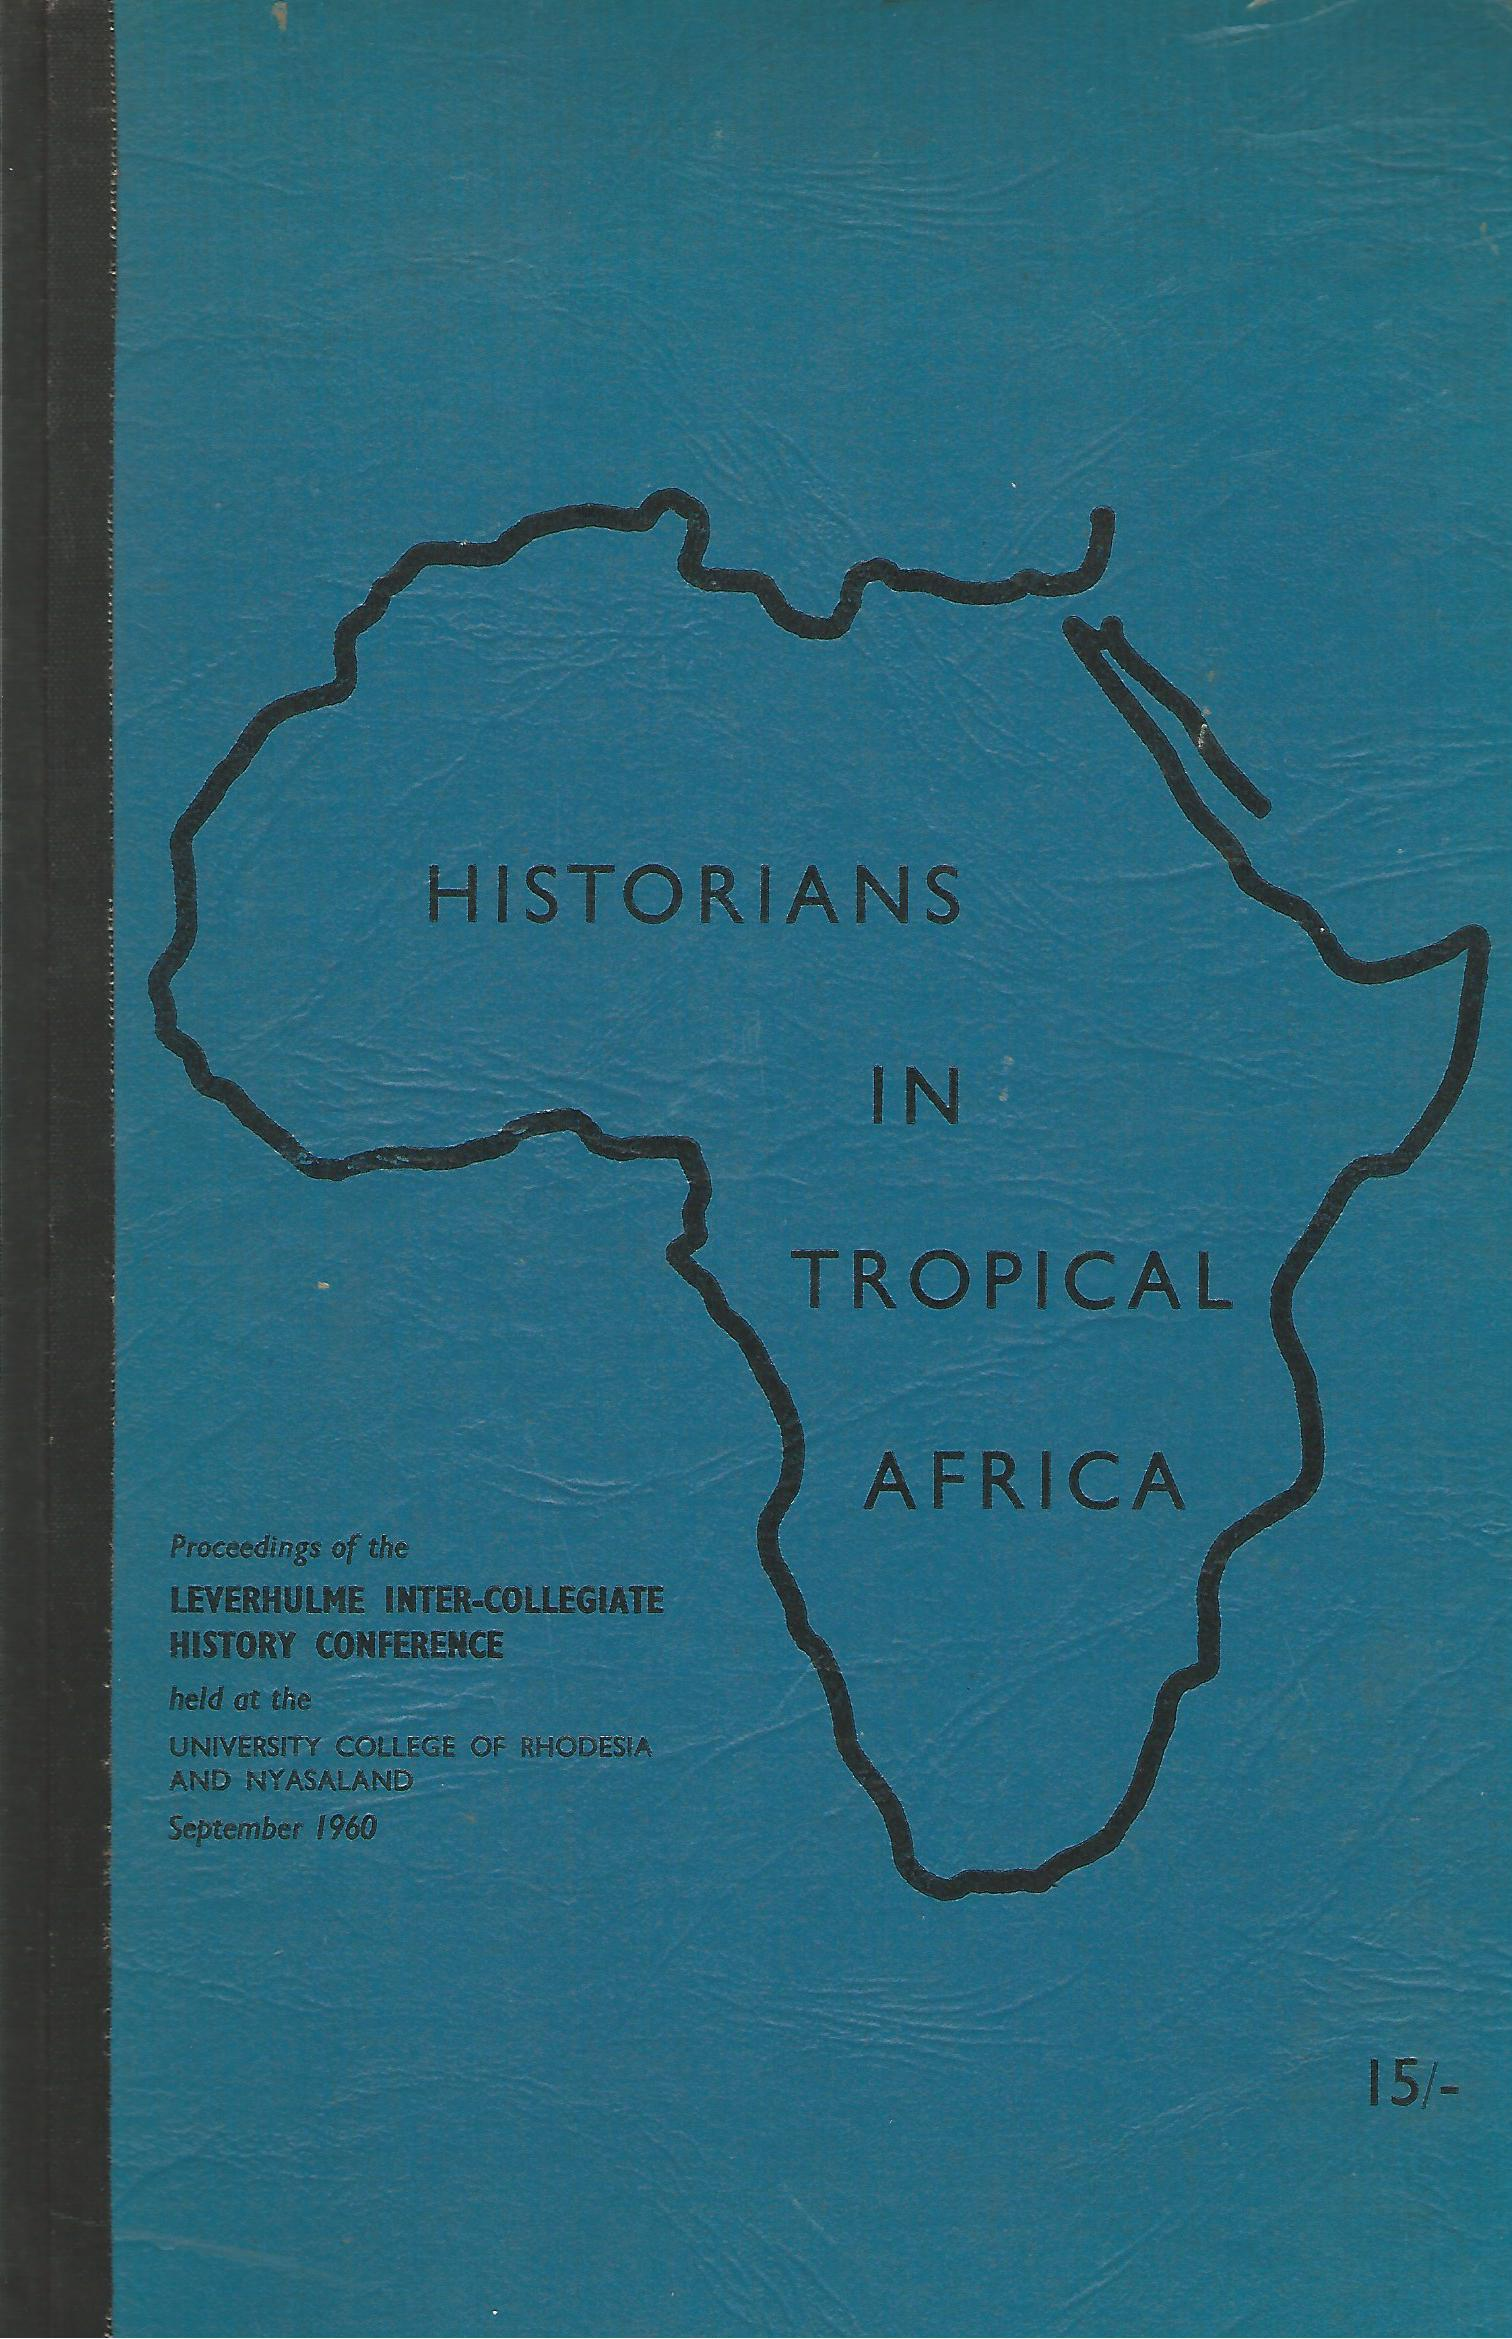 Image for Historians in Tropical Africa: Proceedings of the Leverhulme Inter-Collegiate History Conference held at the University College of Rhodesia and Nyasaland, September 1960.